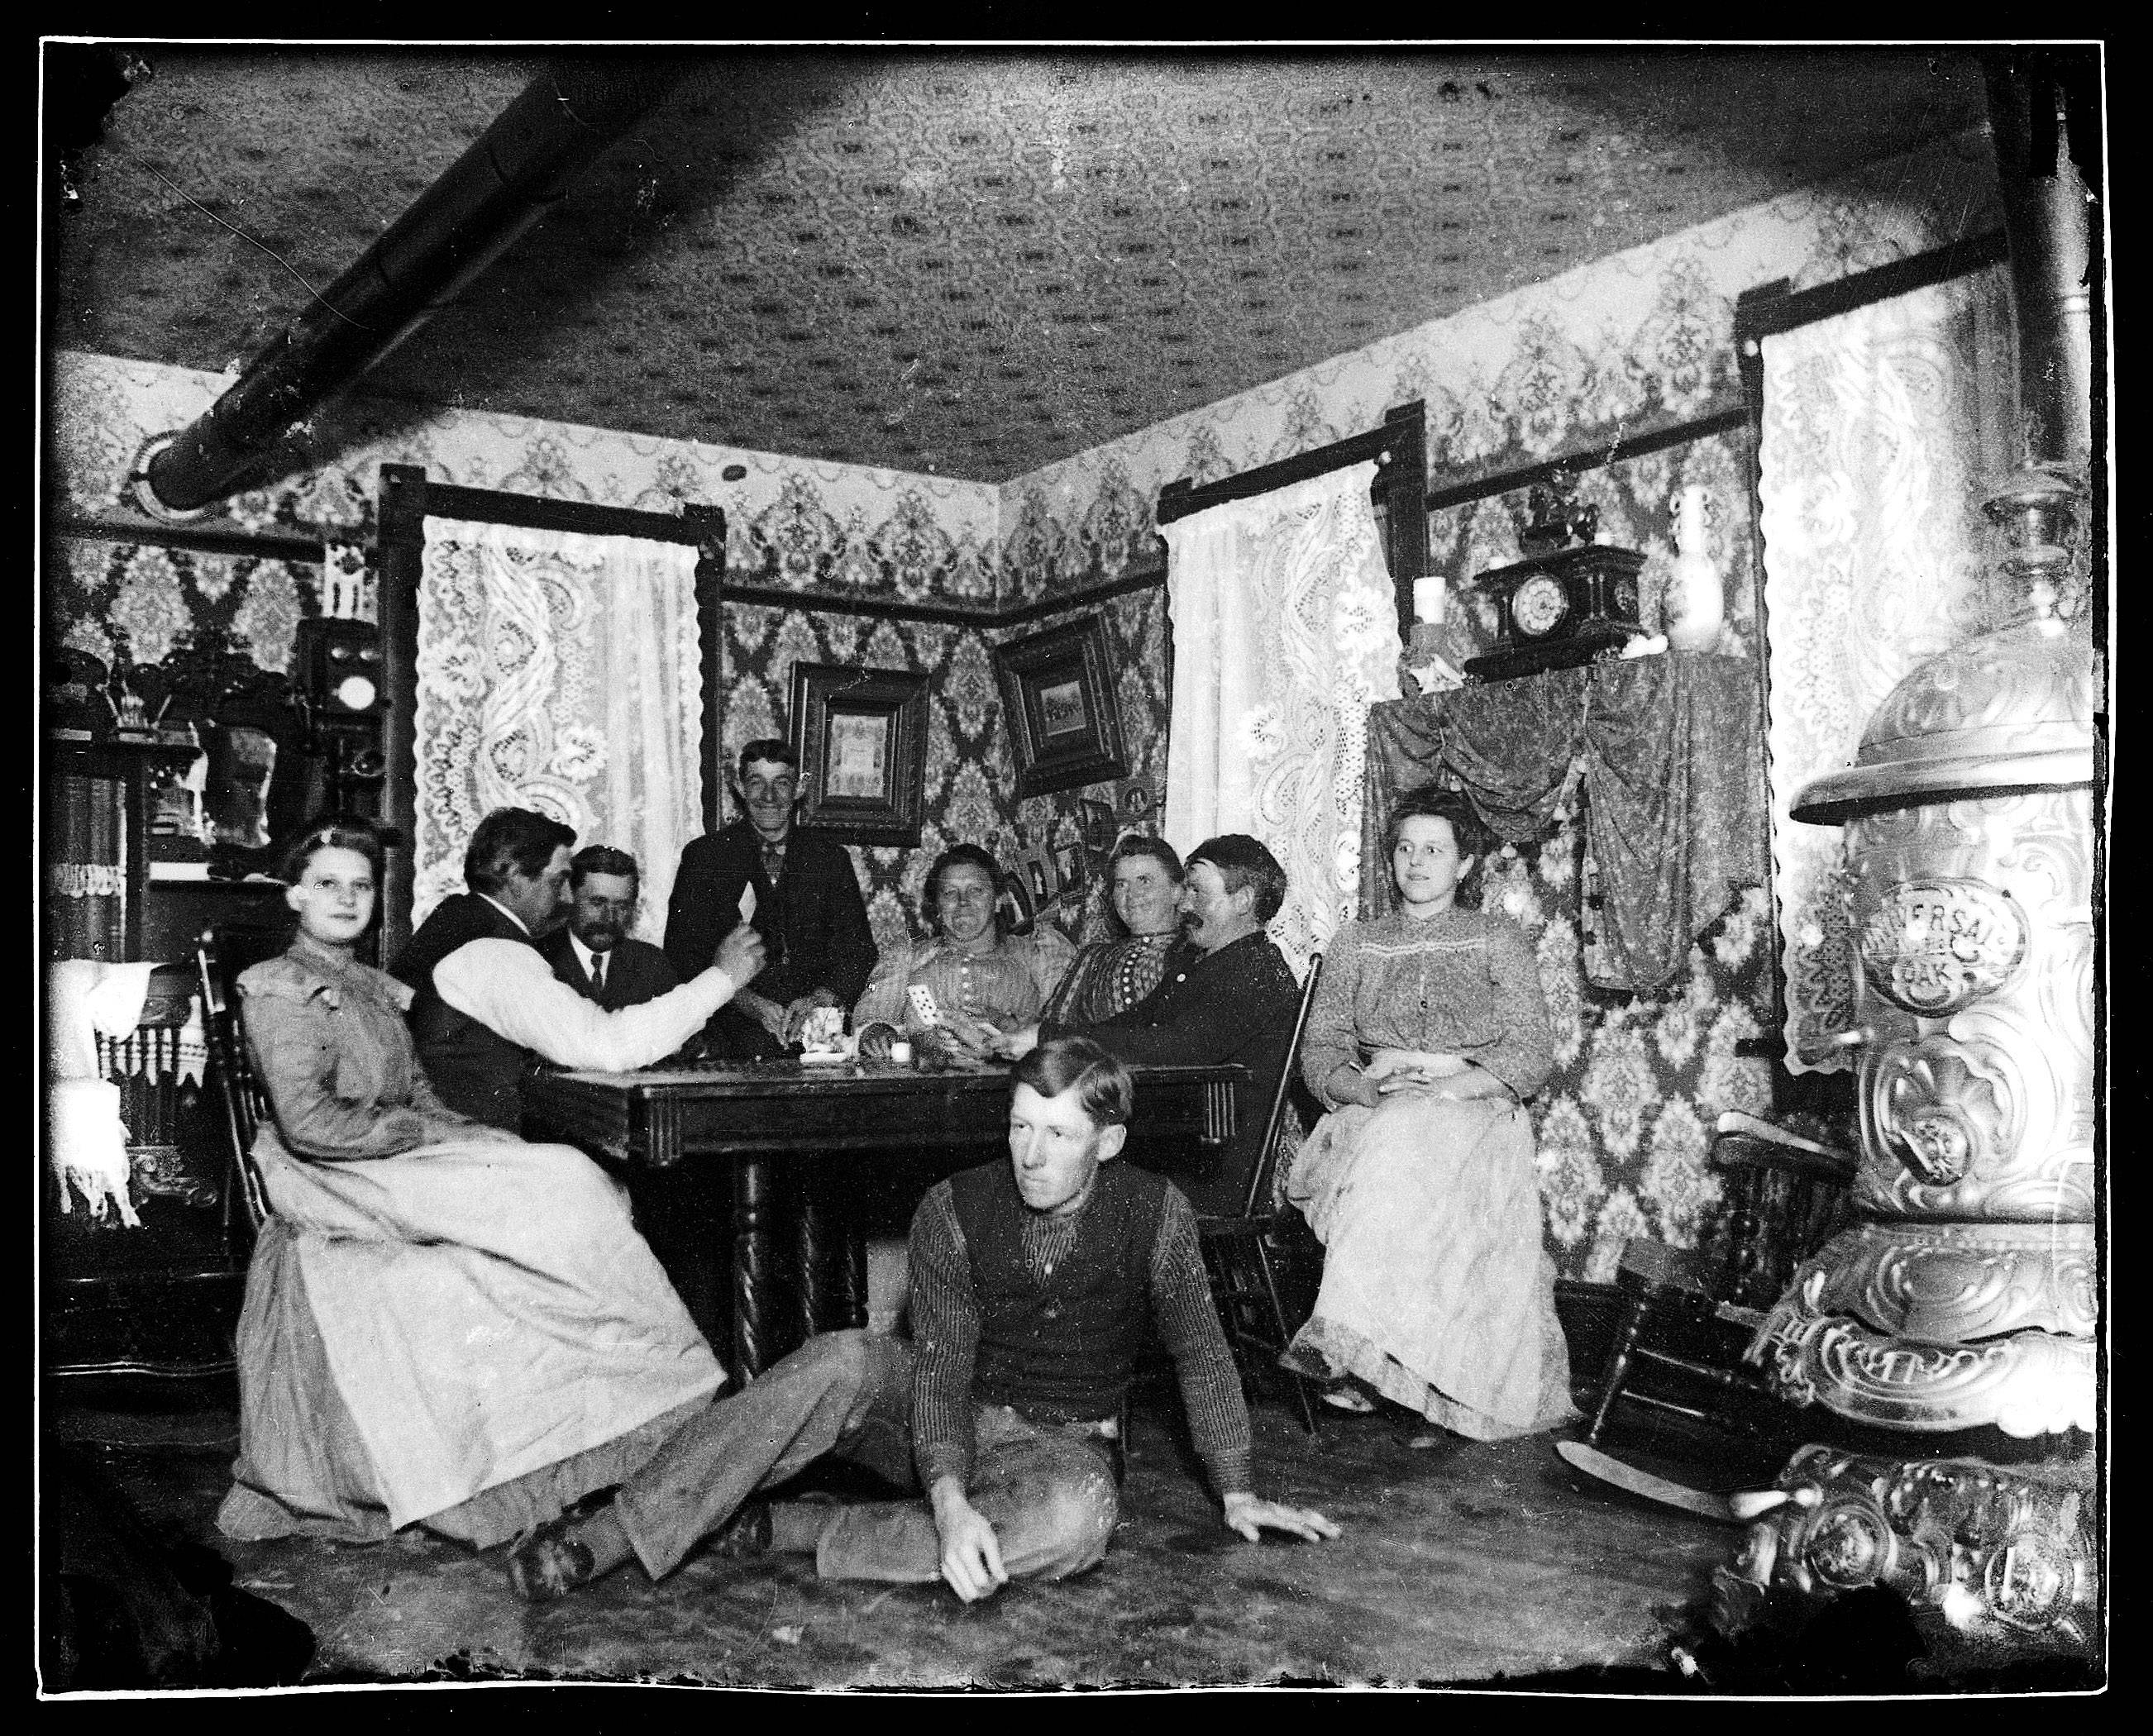 Early 1900s in the living room of the Pfingsten Farm home in Schaumburg. Fred Pfingsten, in the foreground, also took the picture. The camera was set on a fixed object. Some flash powder was given a length of fuse, the room was darkened, camera shutter was opened, fuse was ignited, and Fred would then dash over and sit on the floor until flash powder was ignited. The camera shutter would then be closed.